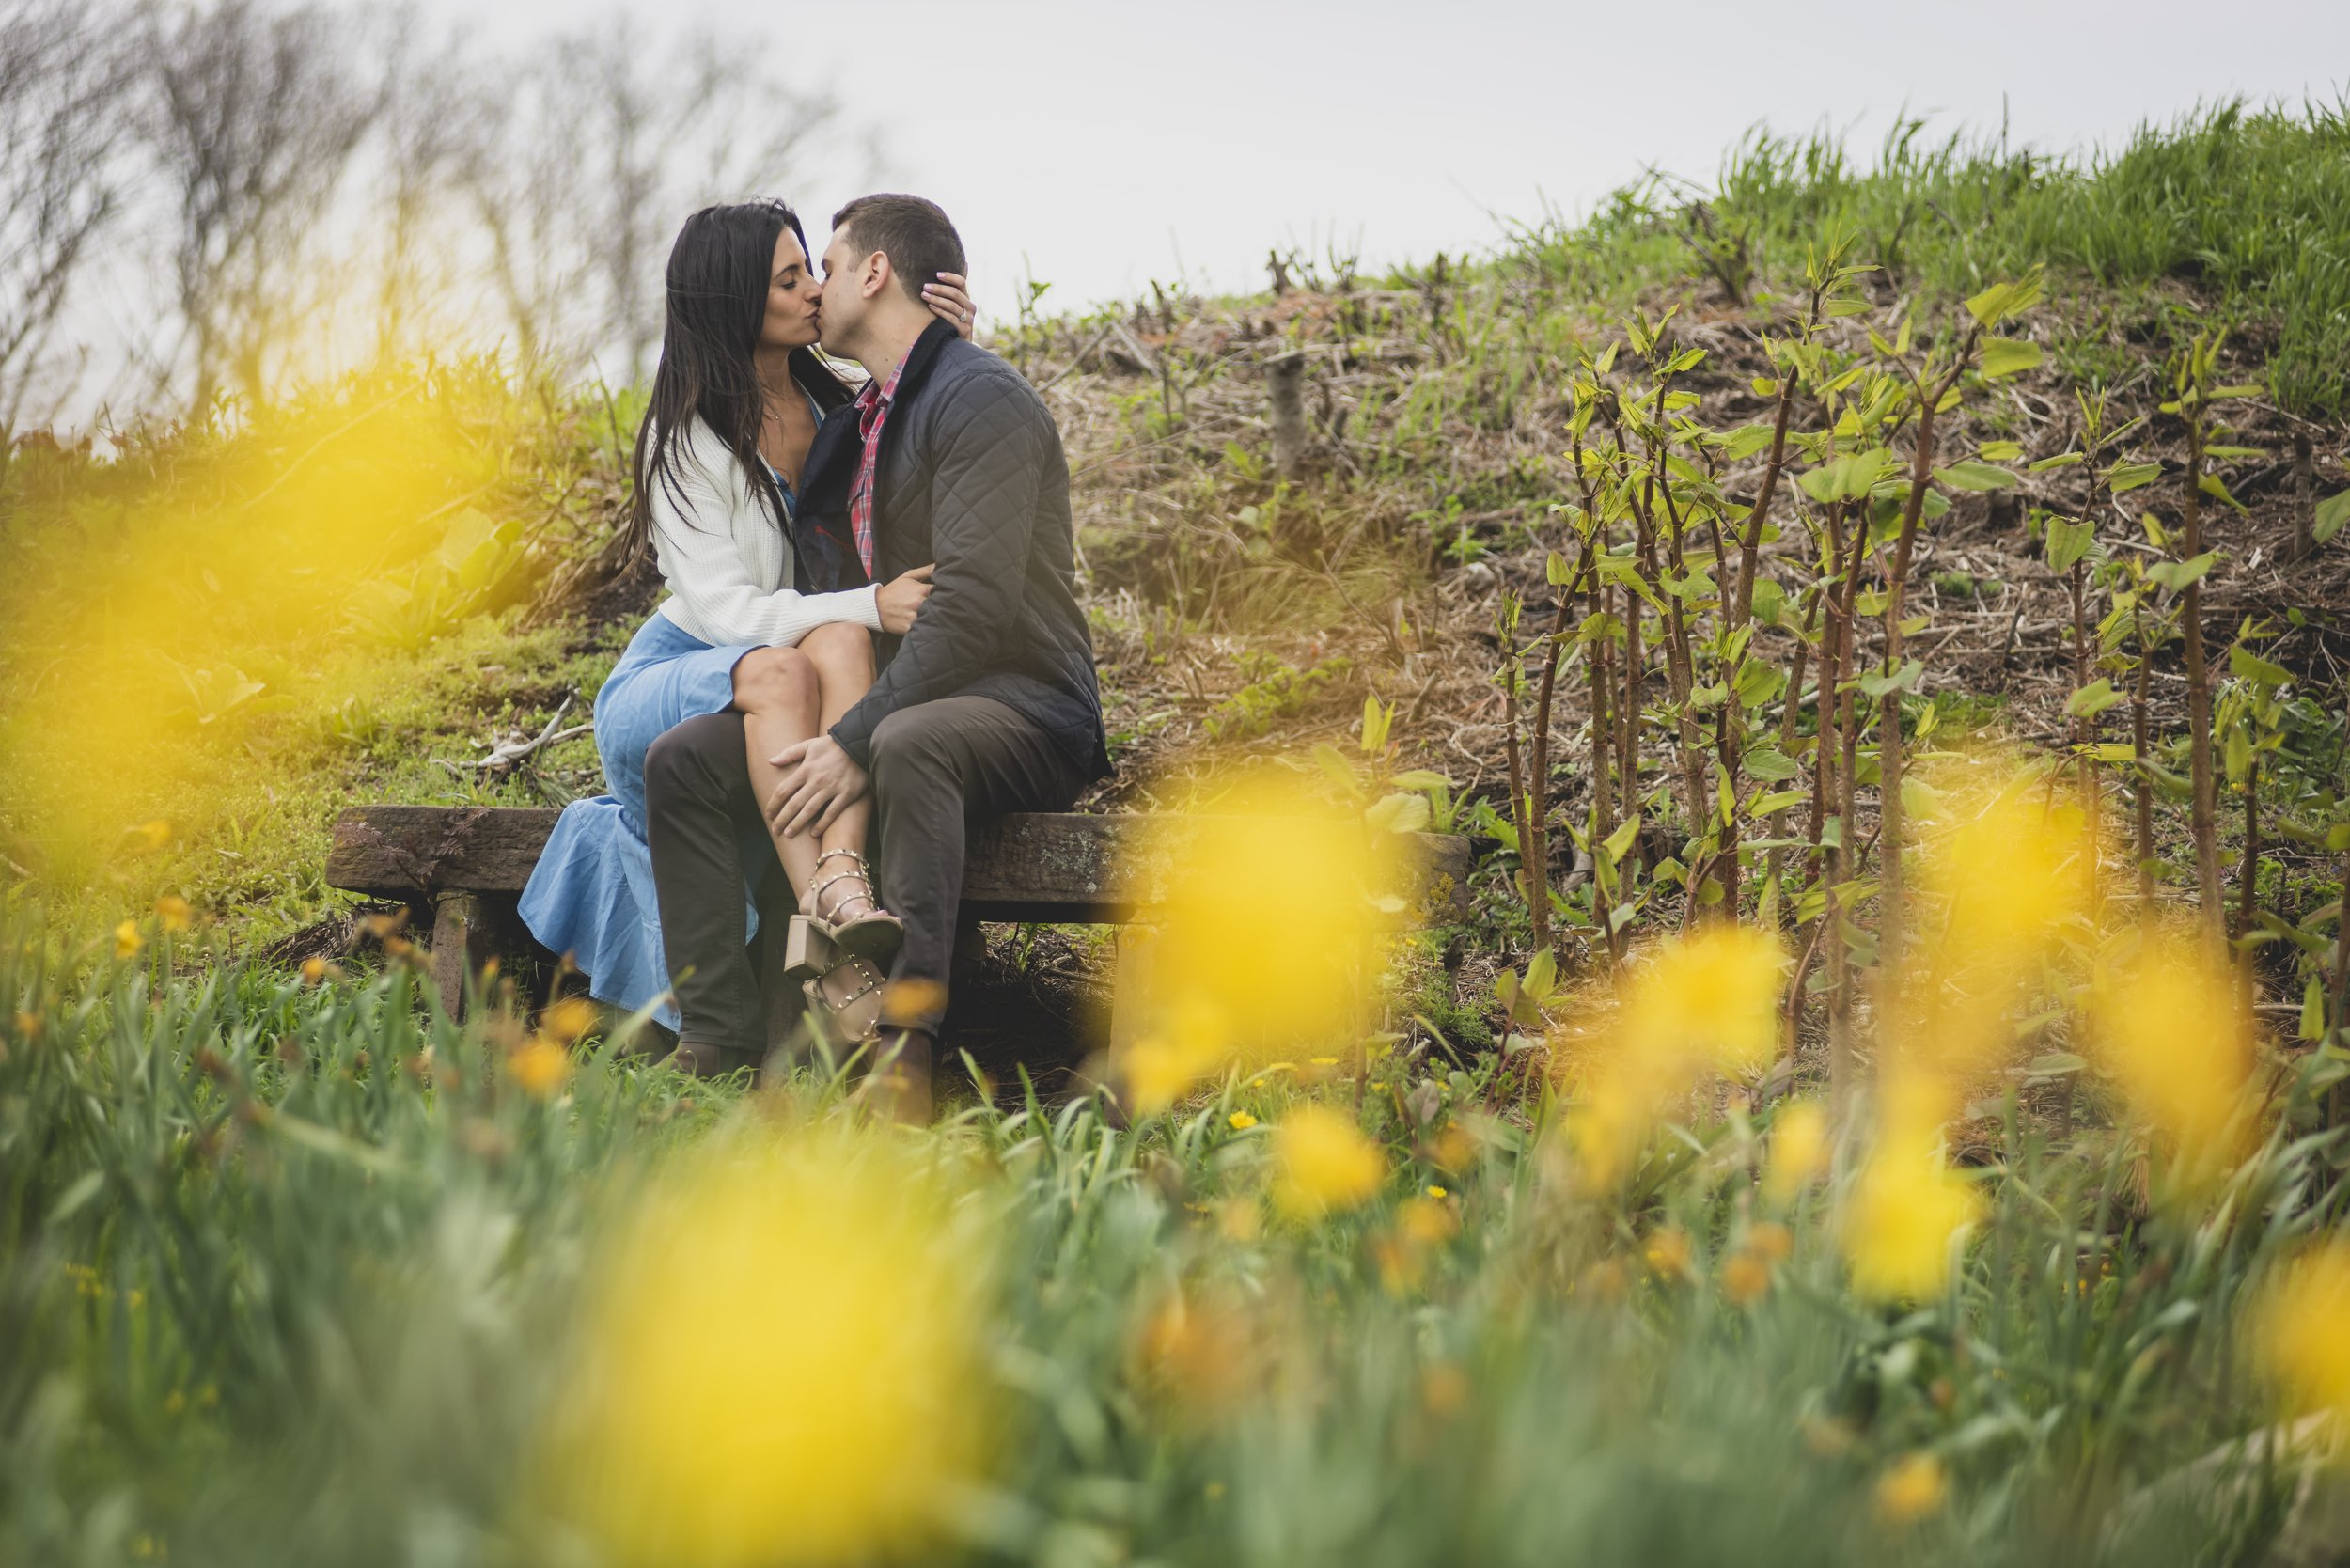 Engagement Photography Services - Castle Hill Lighthouse, Newport, RI - Couple kissing on a bench surrounded by flowers